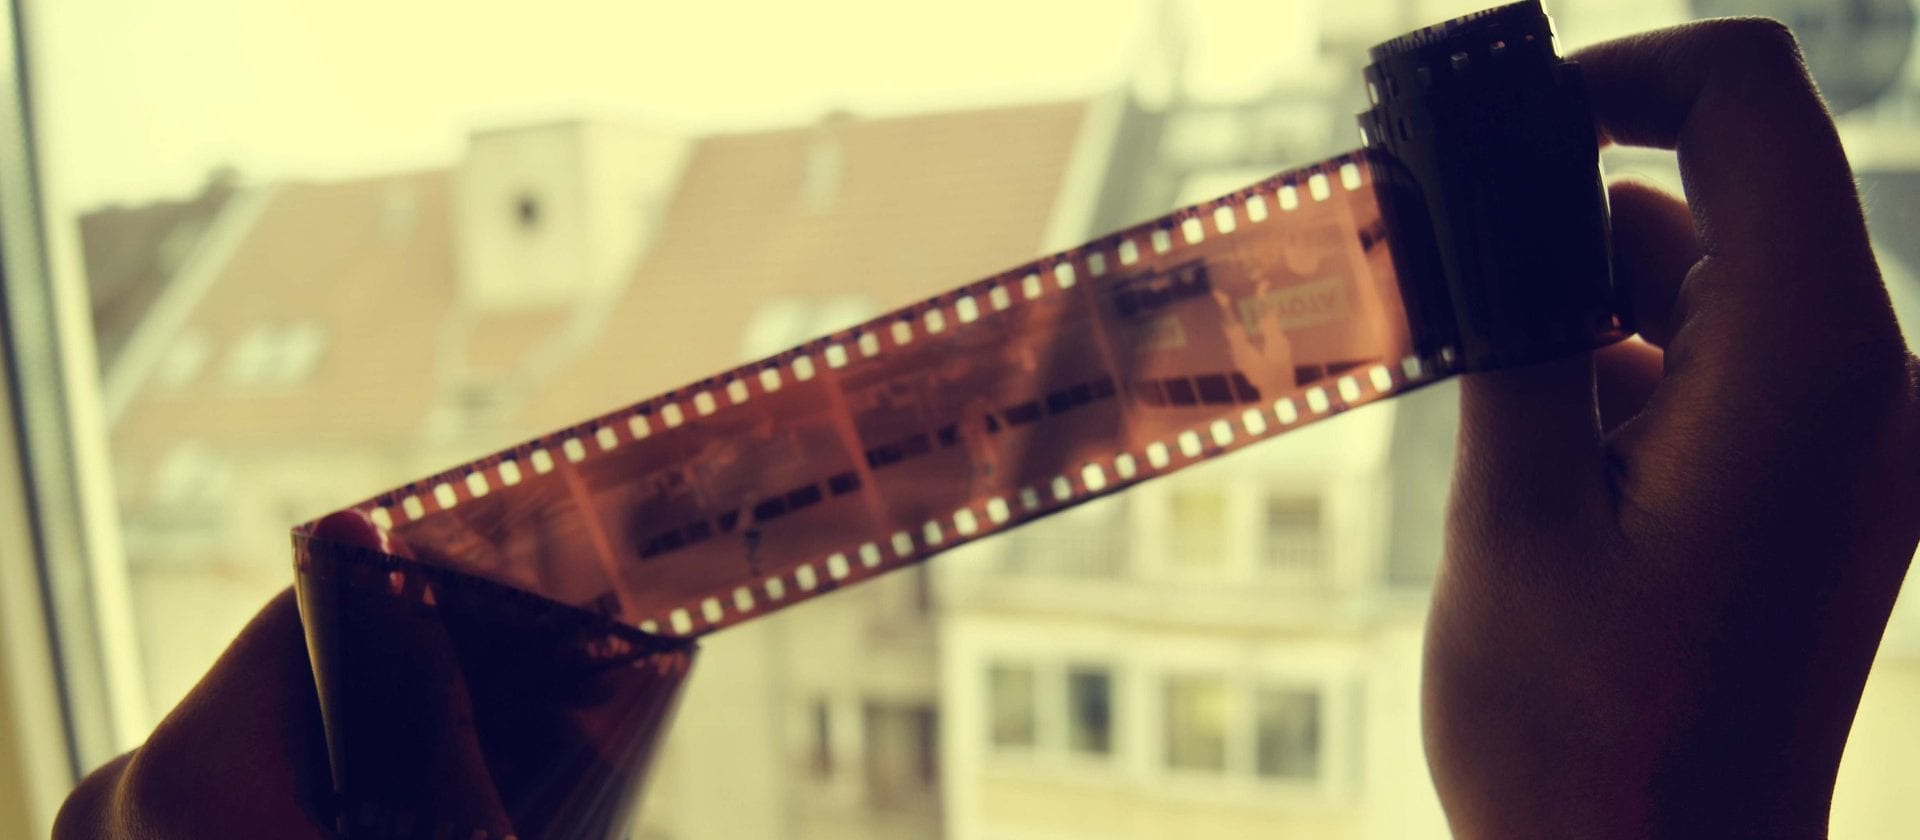 Close up of a film roll being examined near a window. This is apart of our FAQs page.